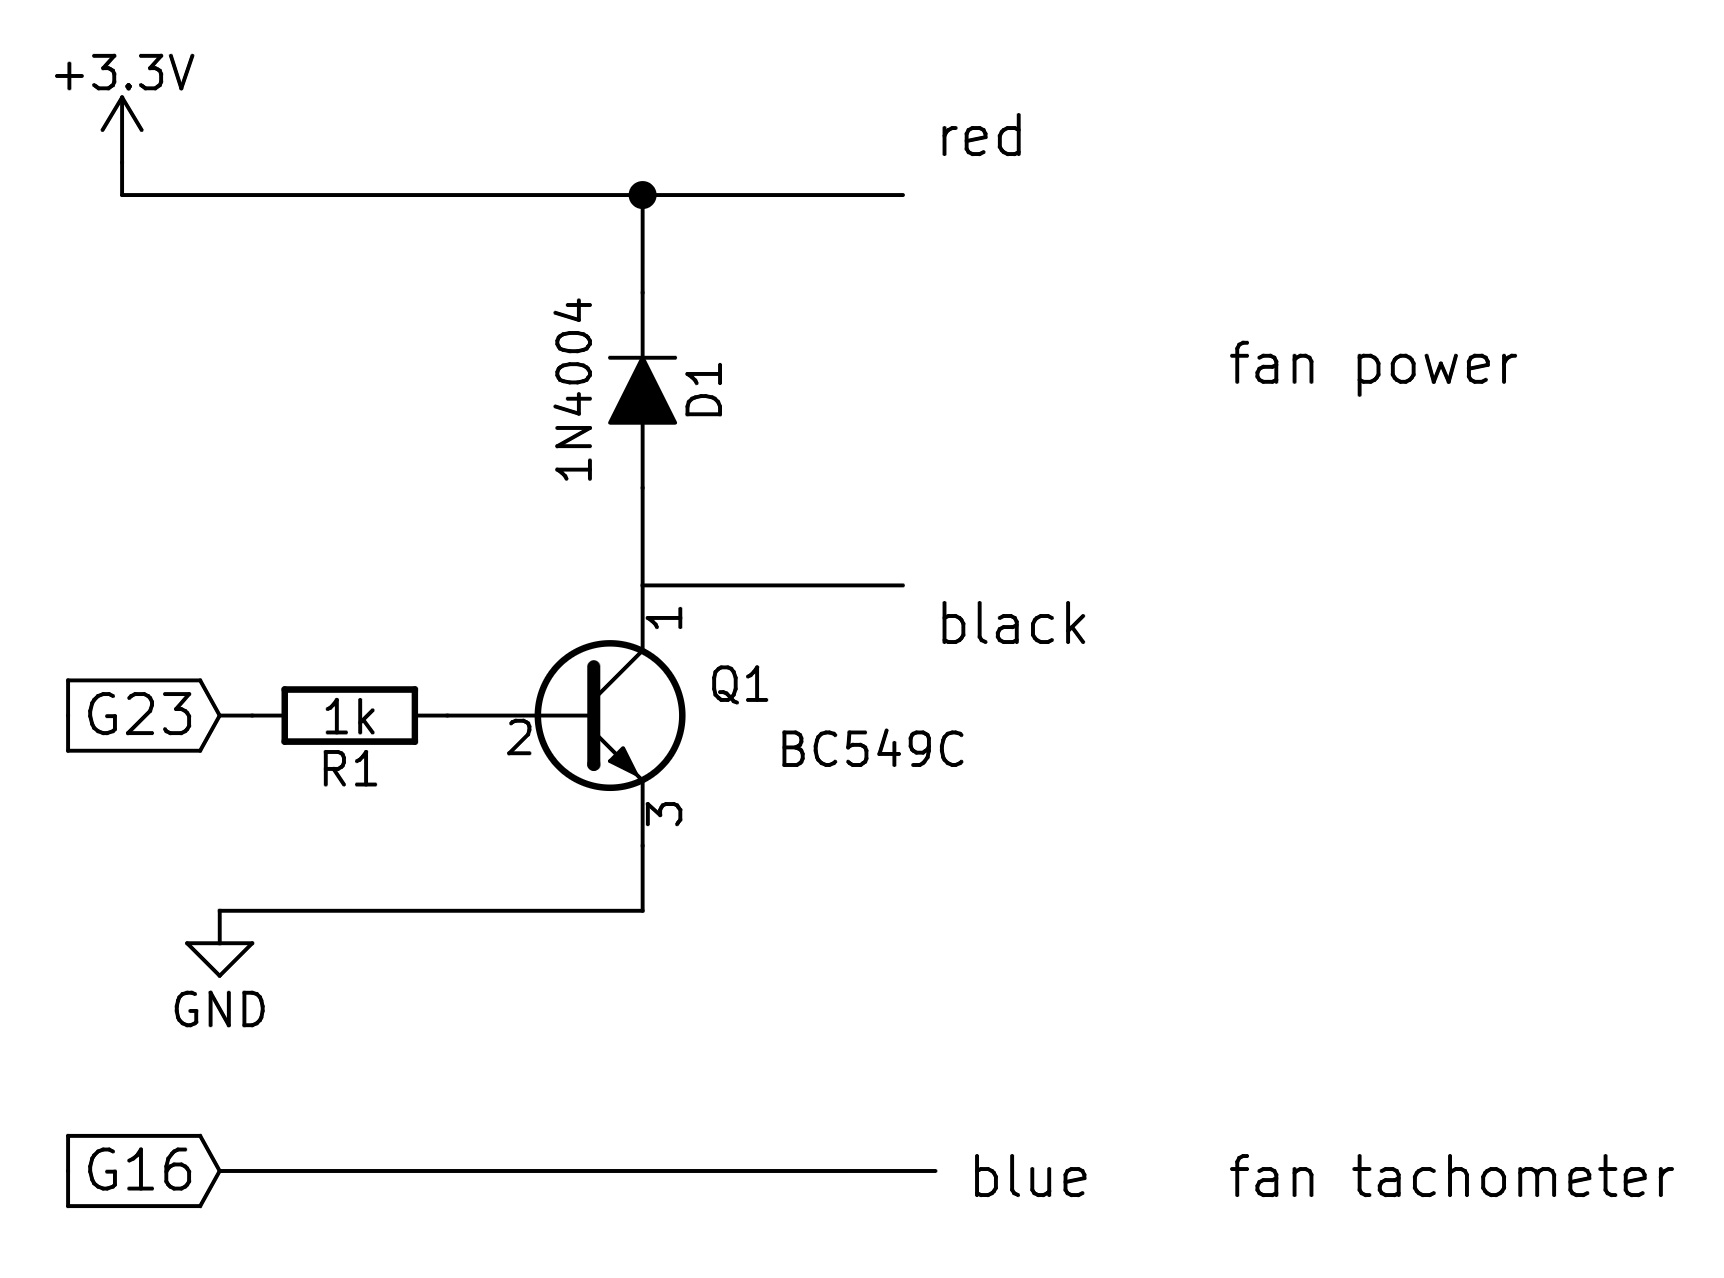 wiring 3w pwm fan wire diagram diagrams for wiring bathroom fan and lights  at edmiracle.co